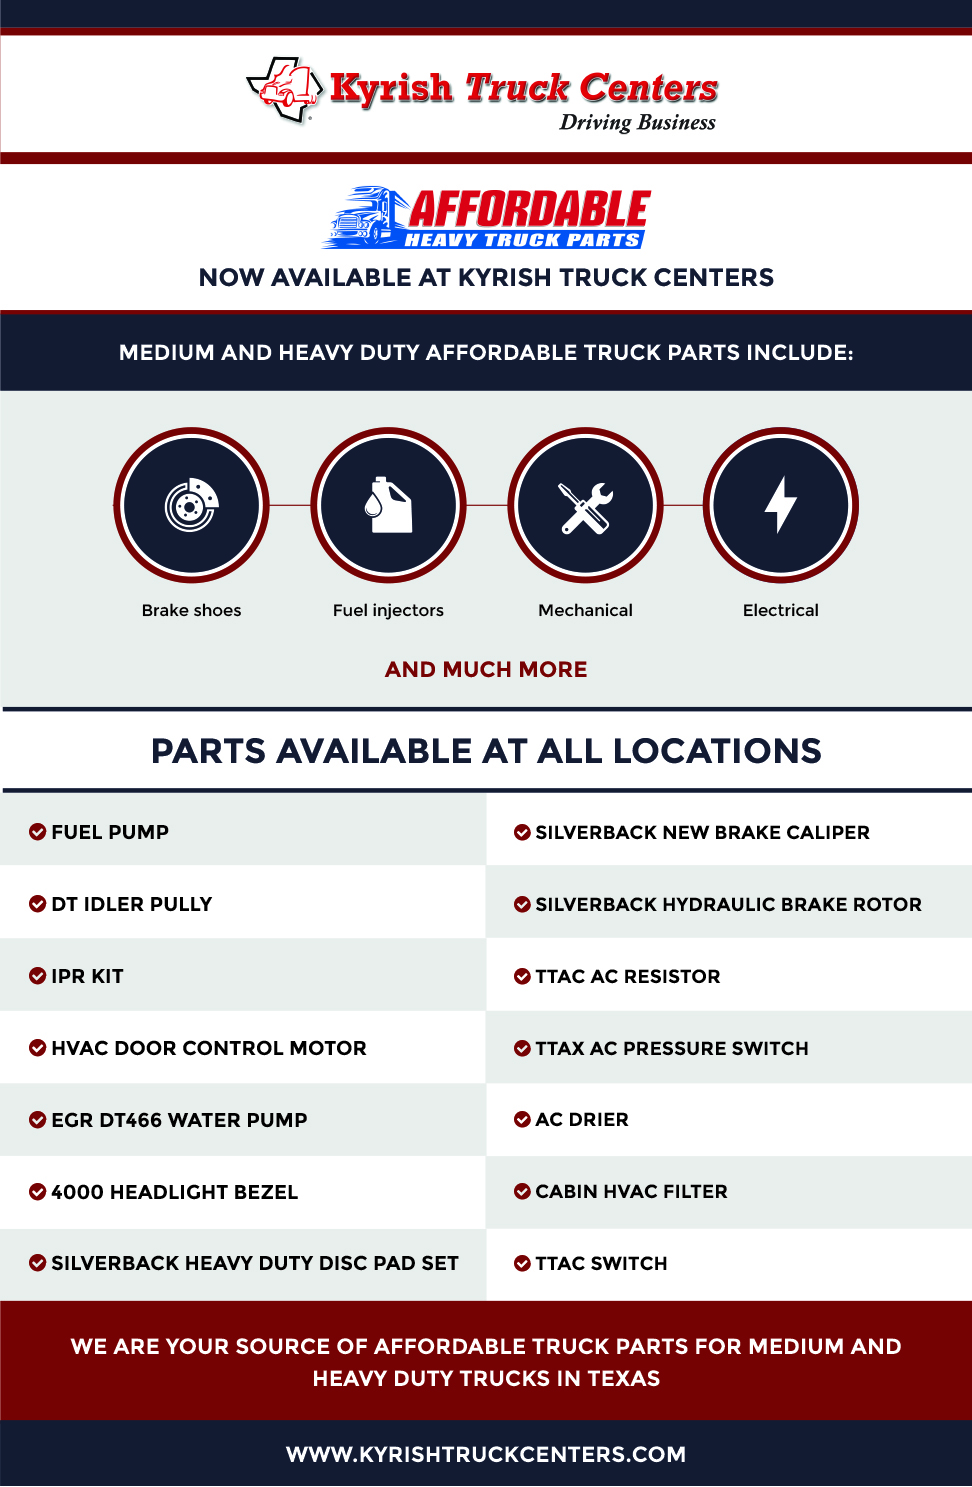 Affordable Truck Parts Offered by Kyrish Truck Centers